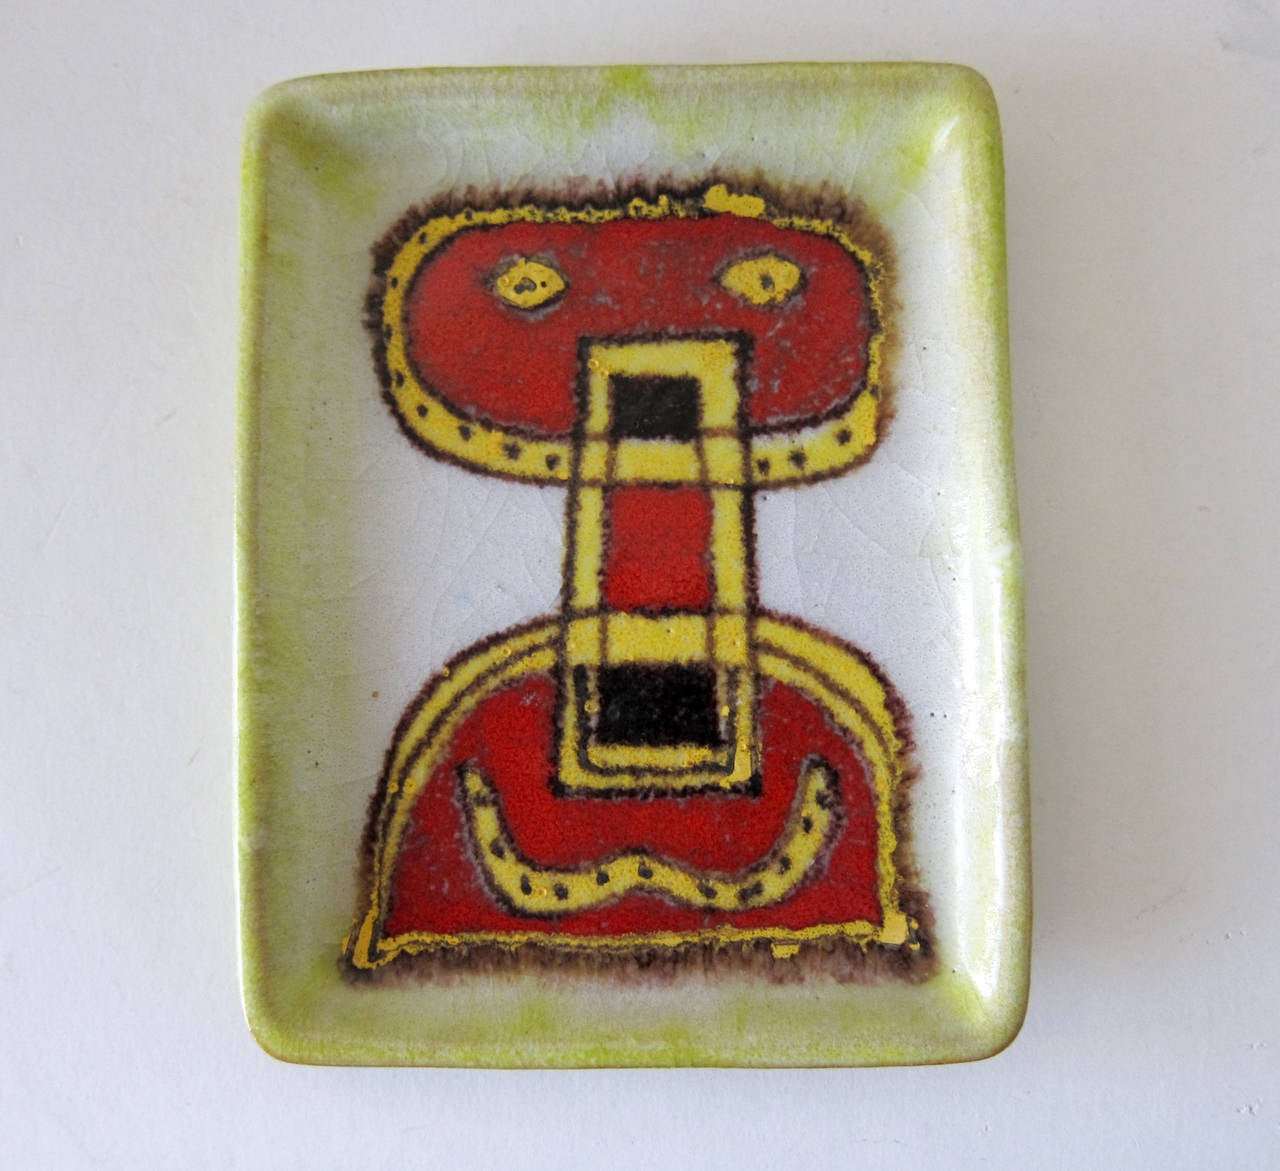 An Italian abstract modern figural tray with foamy glaze created by Guido Gambone of Italy. Tray measures 5.25